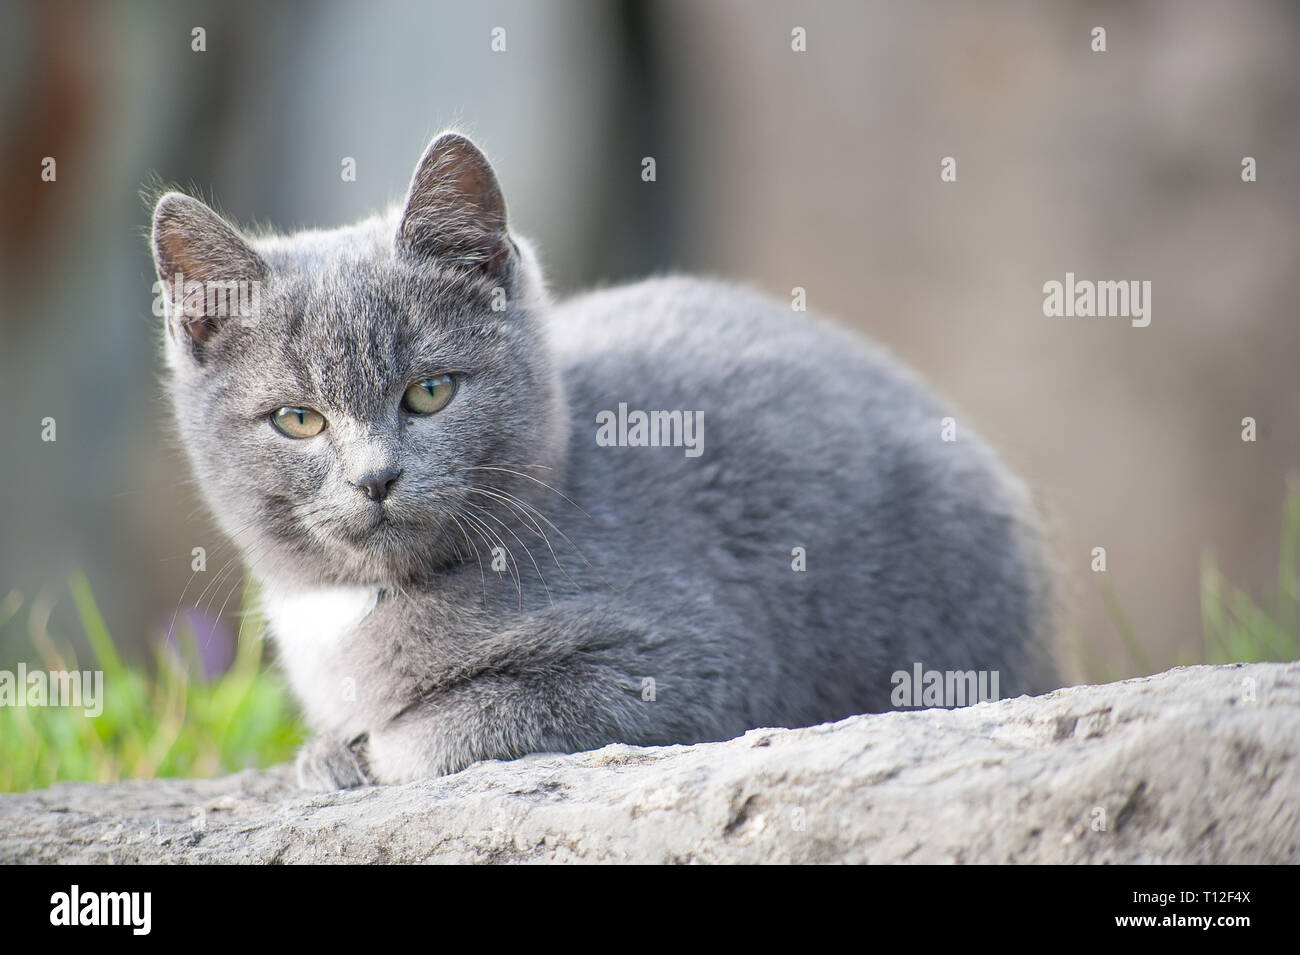 cat pup intrigued by the photographer - Stock Image